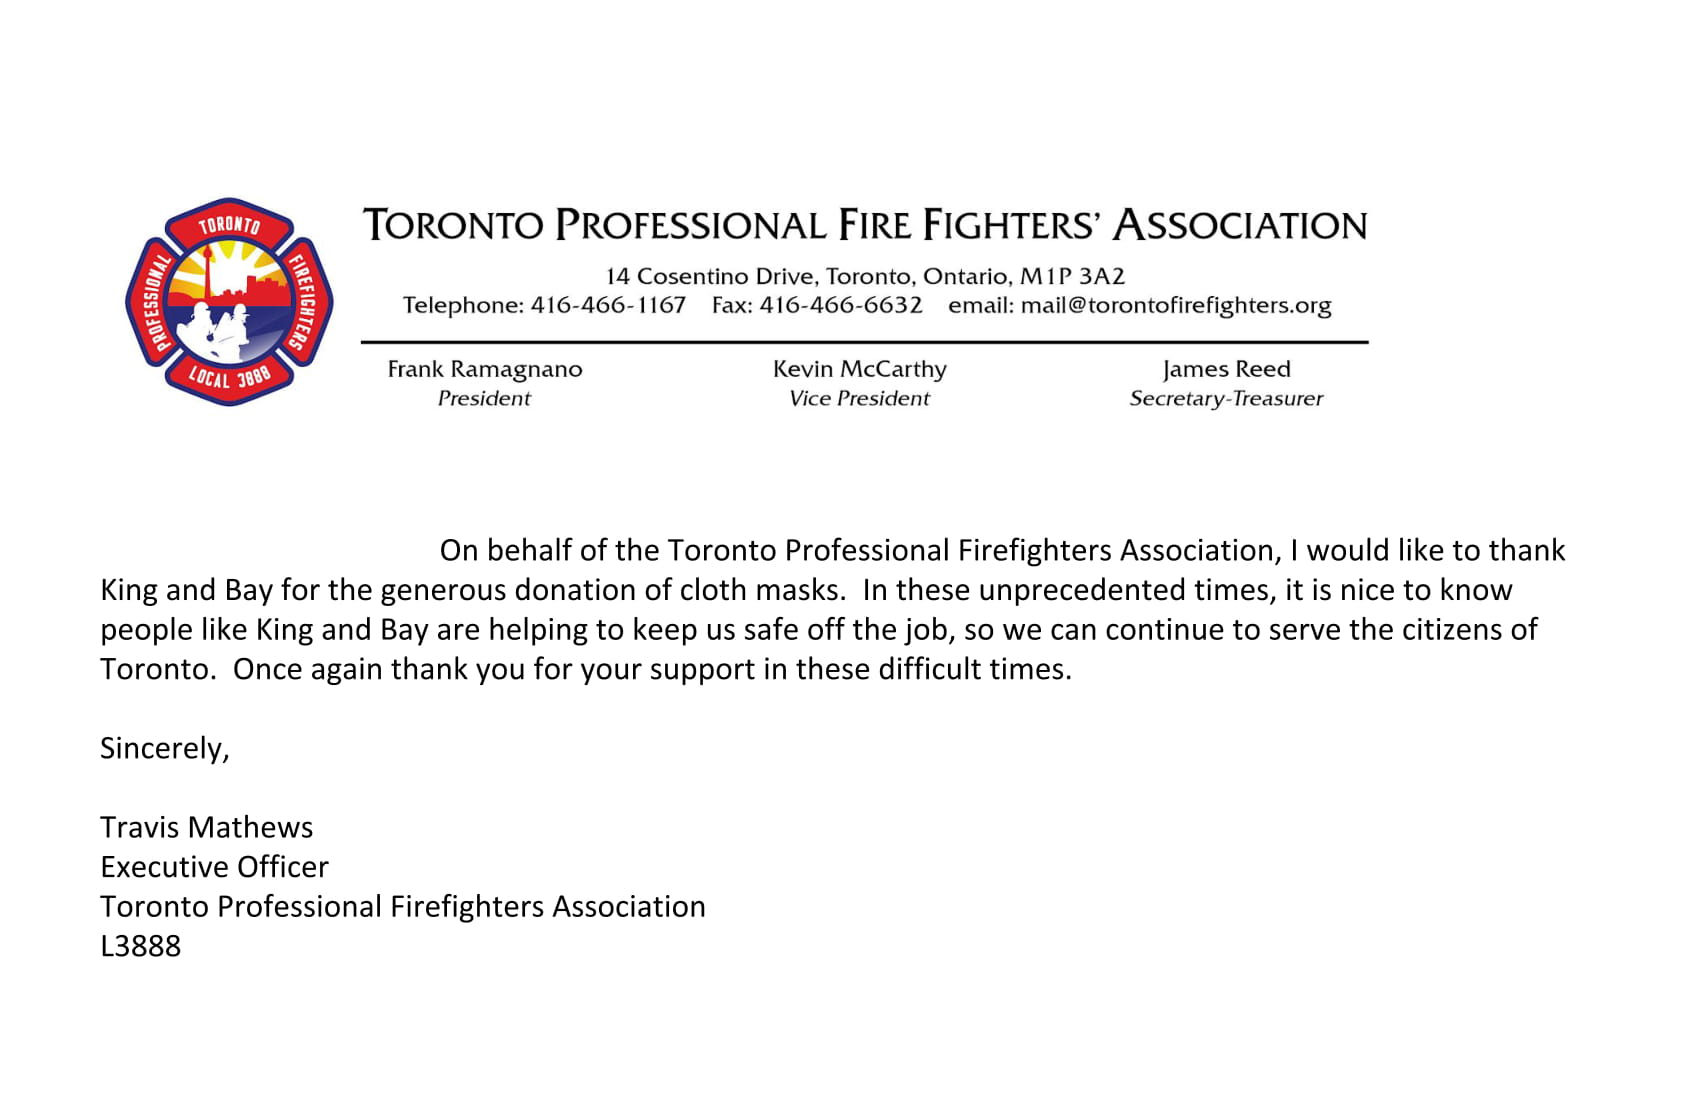 Toronto Professional Fire Fighters' Association thanks King & Bay for Mission2Mask donation